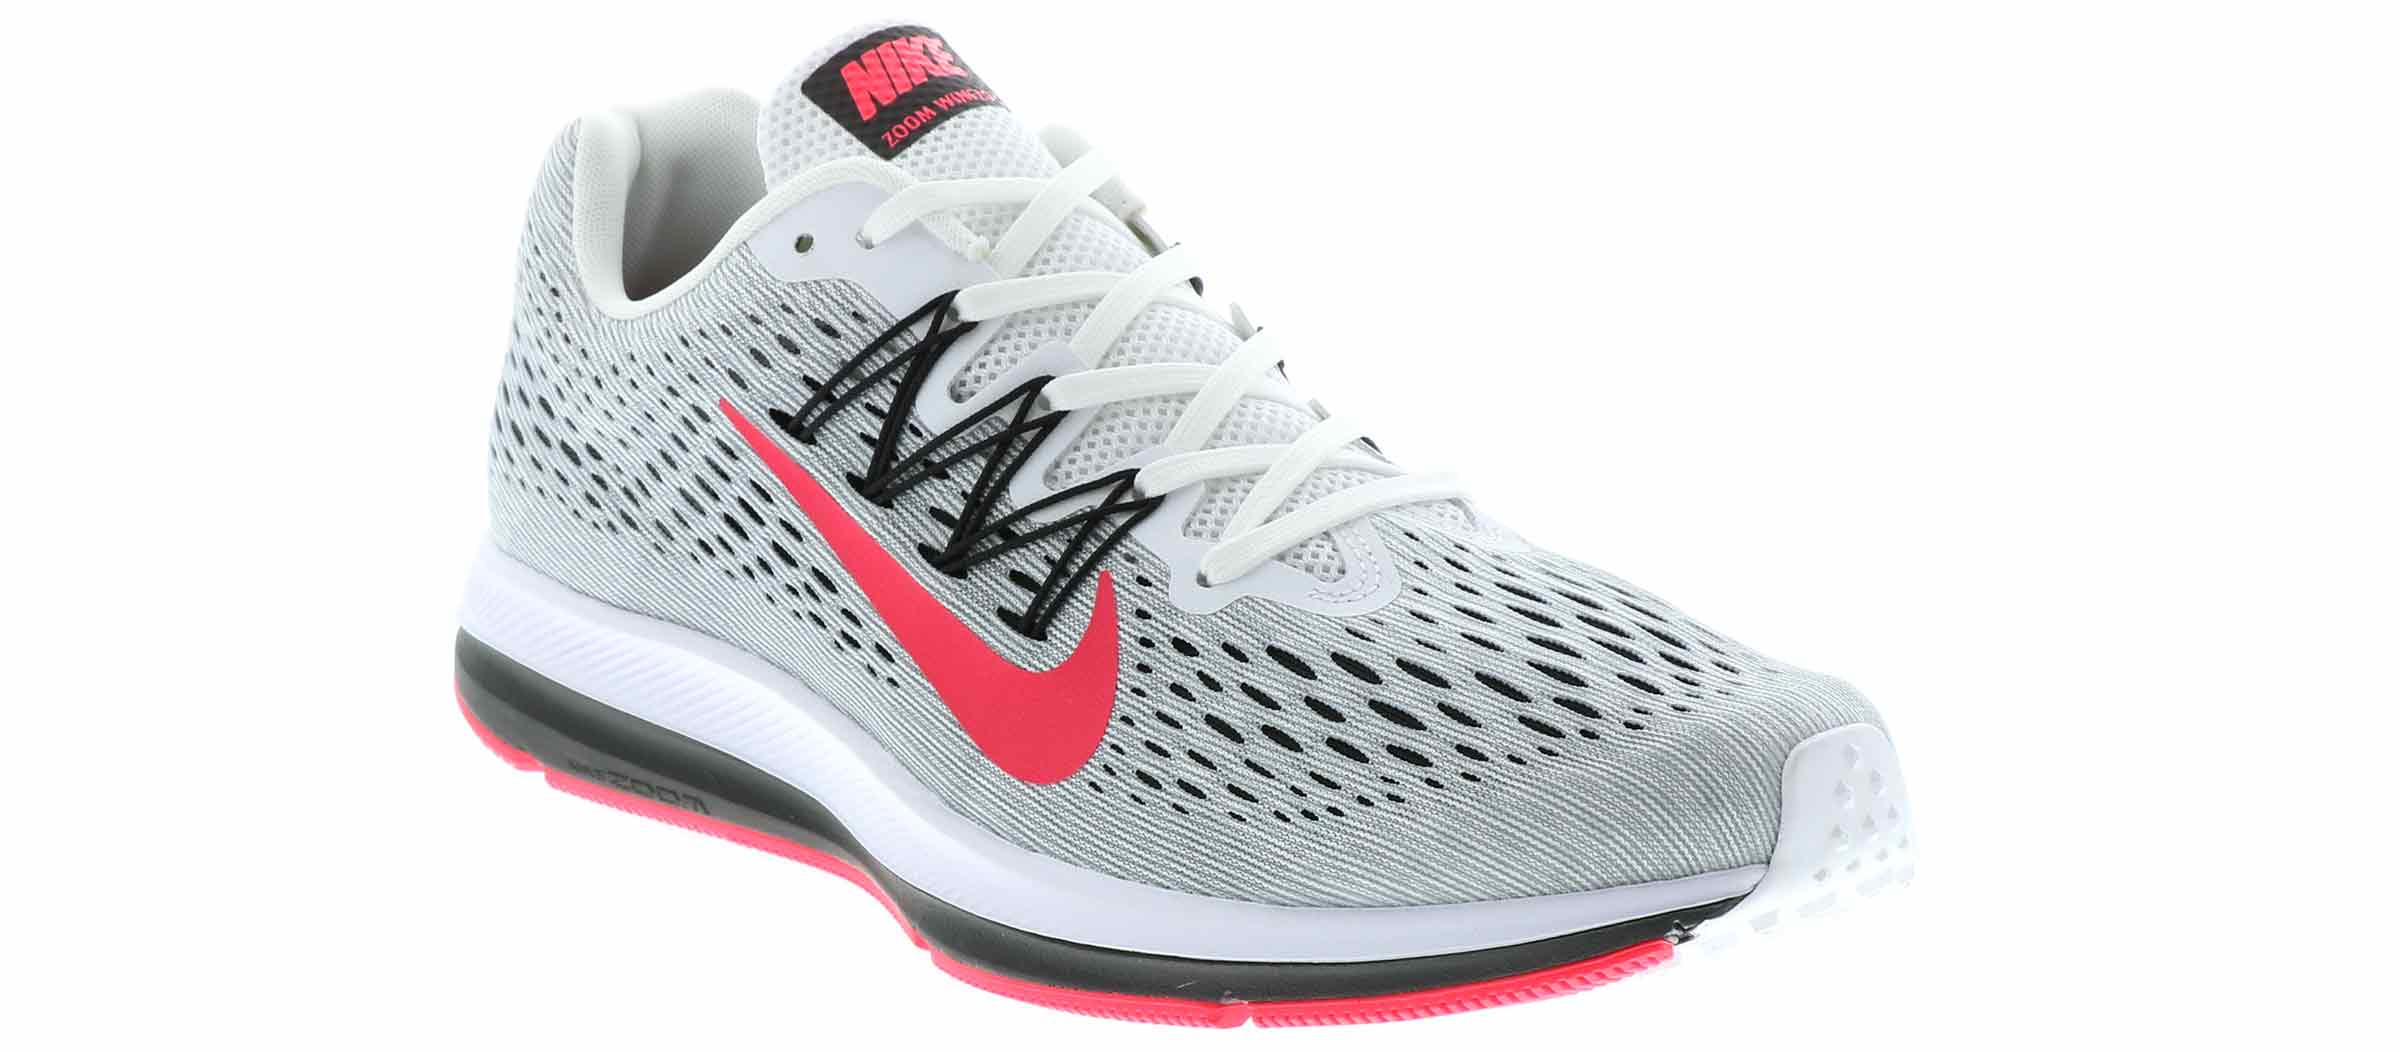 sale retailer c37dd 359ba Men's Nike Air Zoom Winflo 5